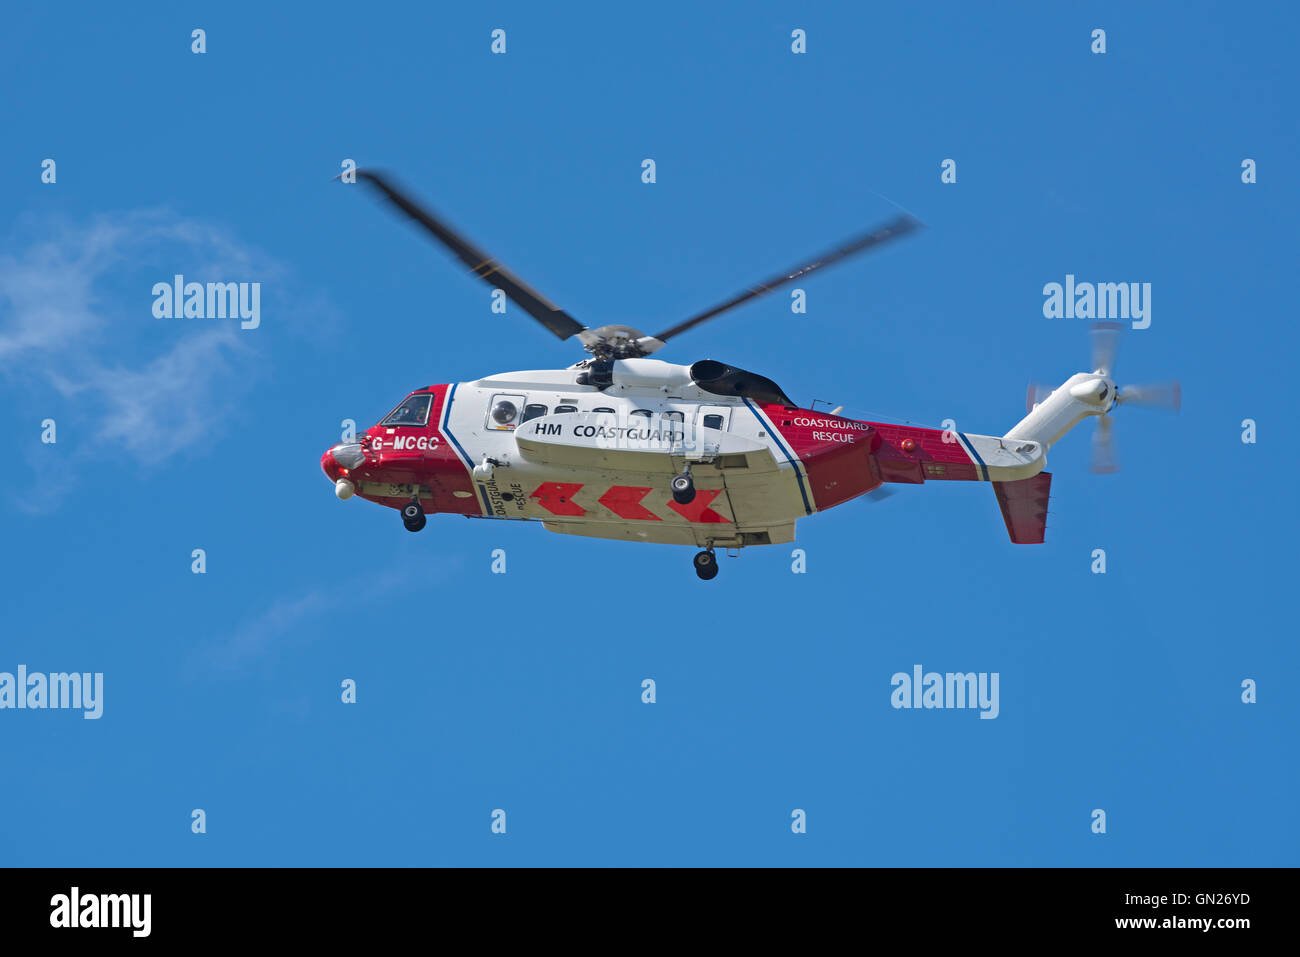 Sikorsky S-92A Coastguard SAR Helicopter (G-MCGC) based at Inverness. SCO 11,205. - Stock Image